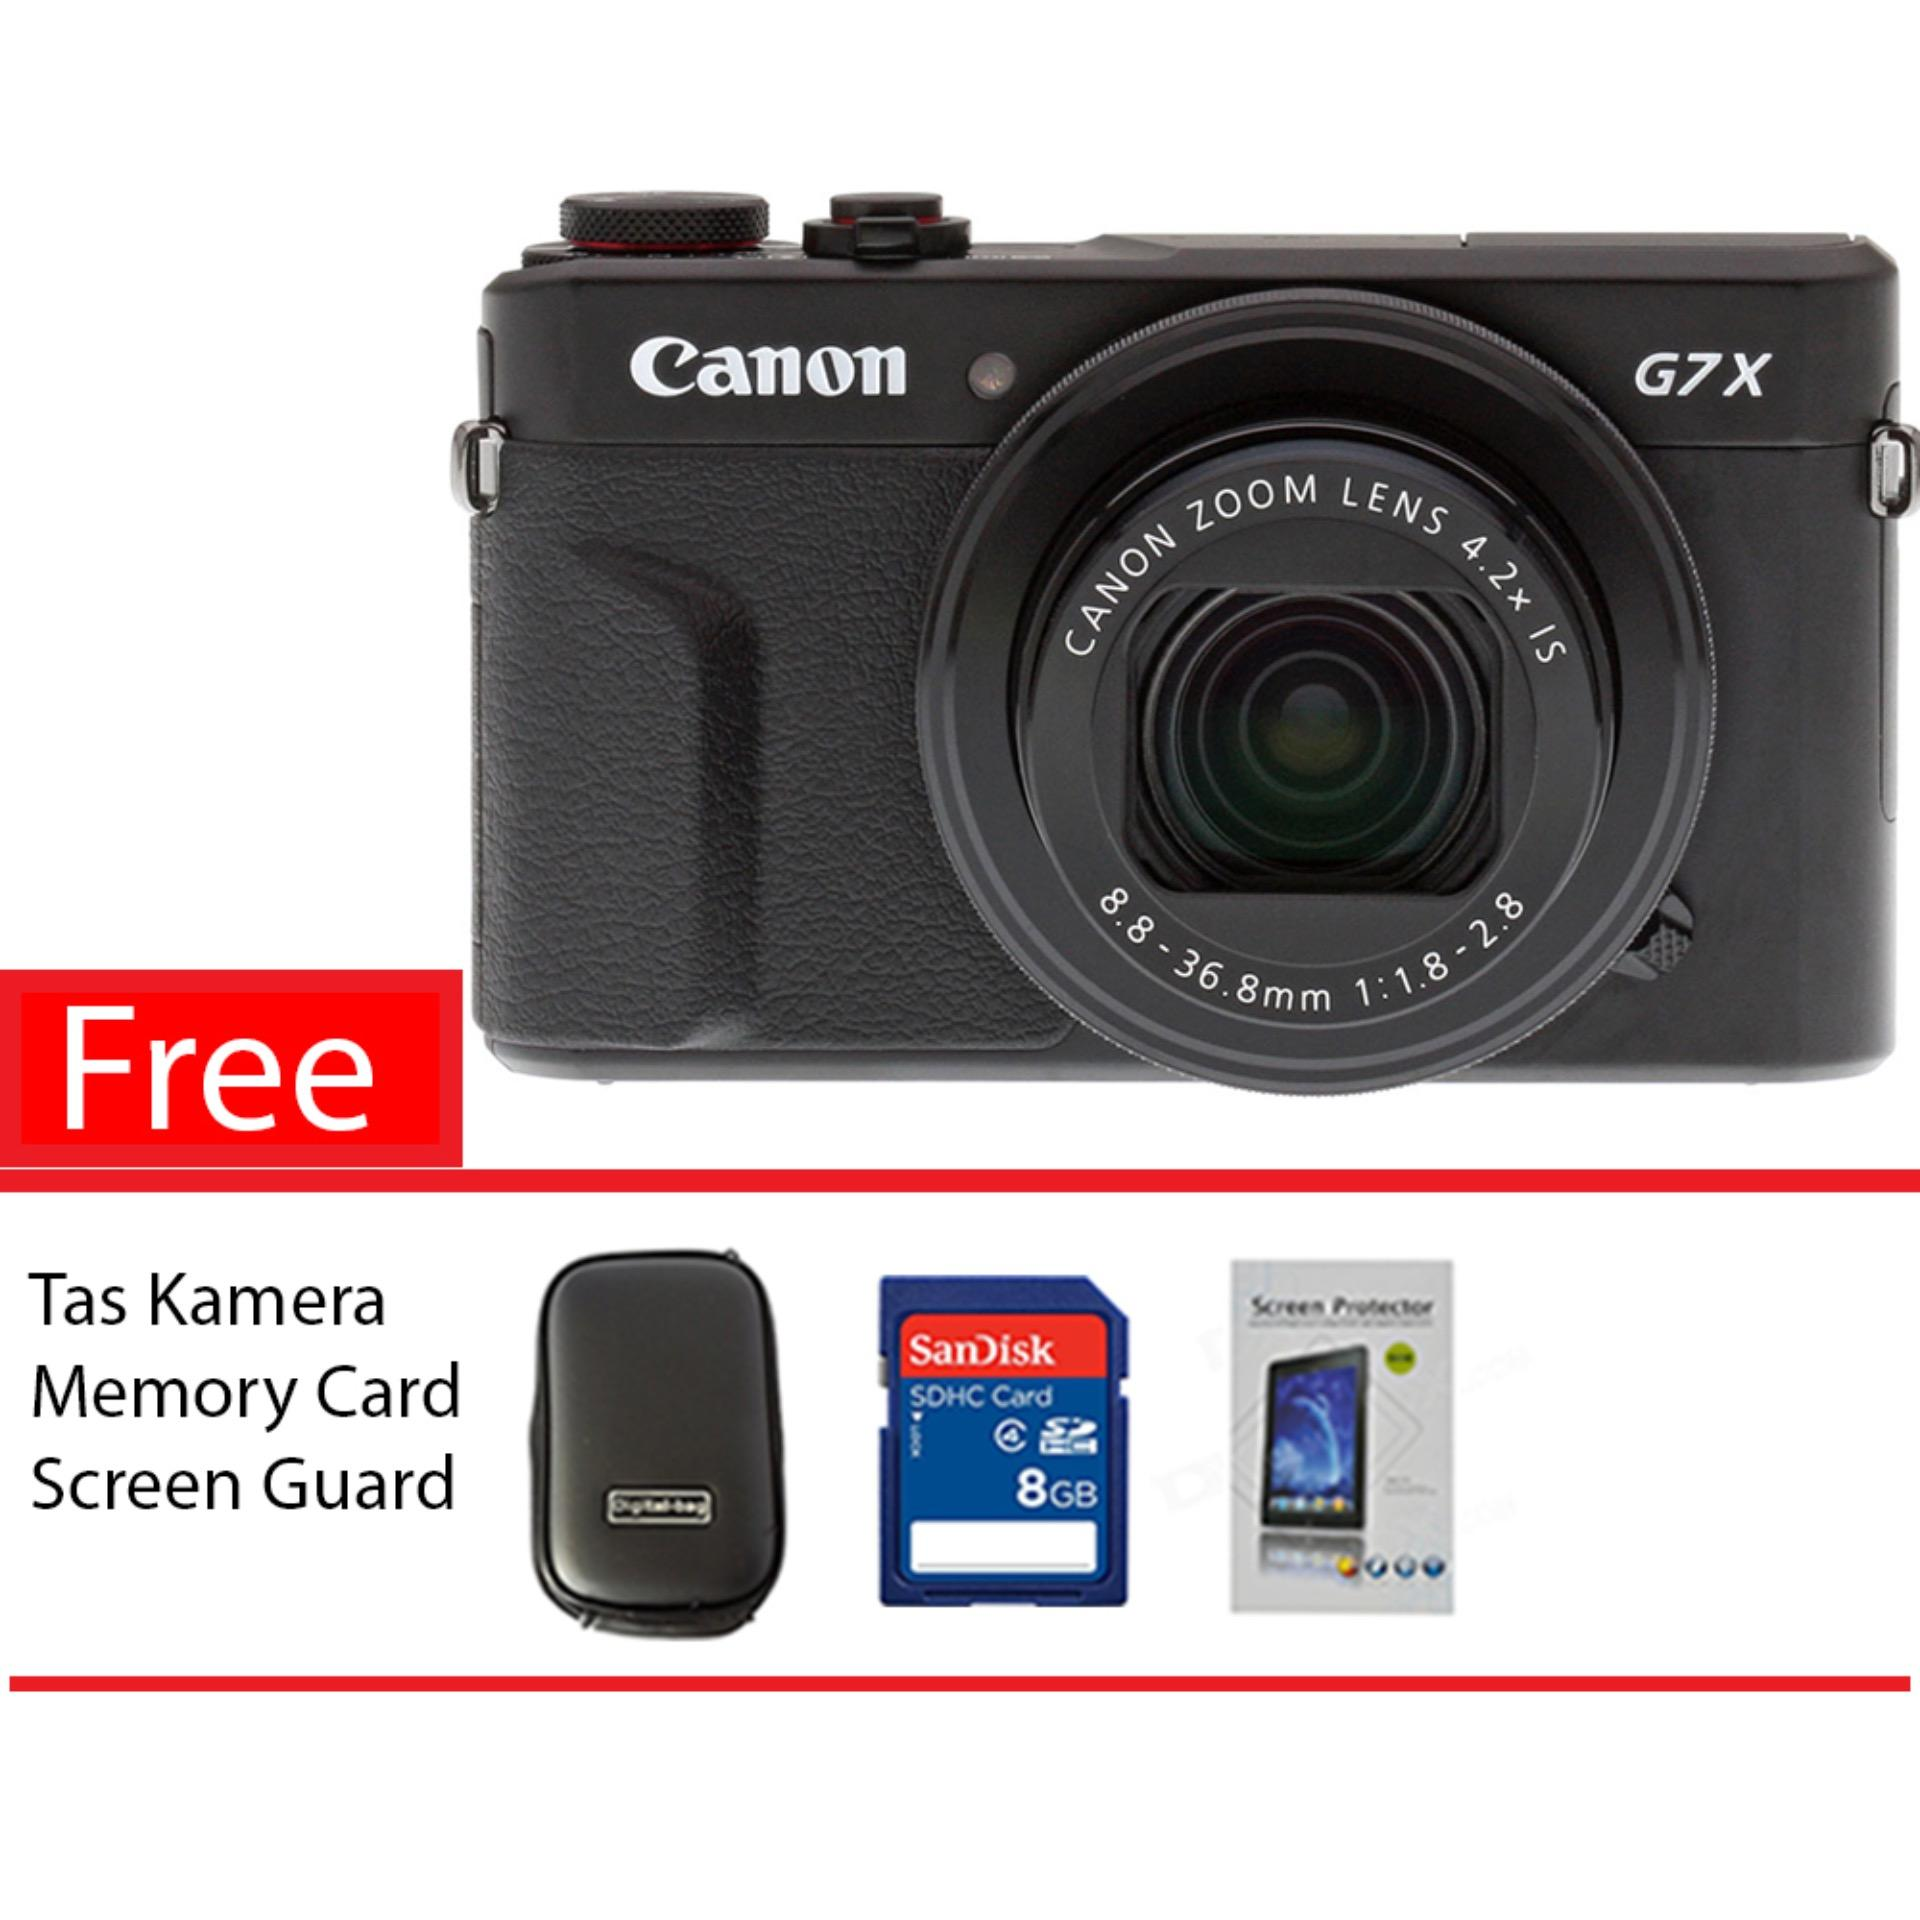 Penawaran Istimewa Canon Powershot G7X Mark Ii 20 1Mp Digital Camera Hitam Free Memory Card Screen Guard Tas Kamera Terbaru